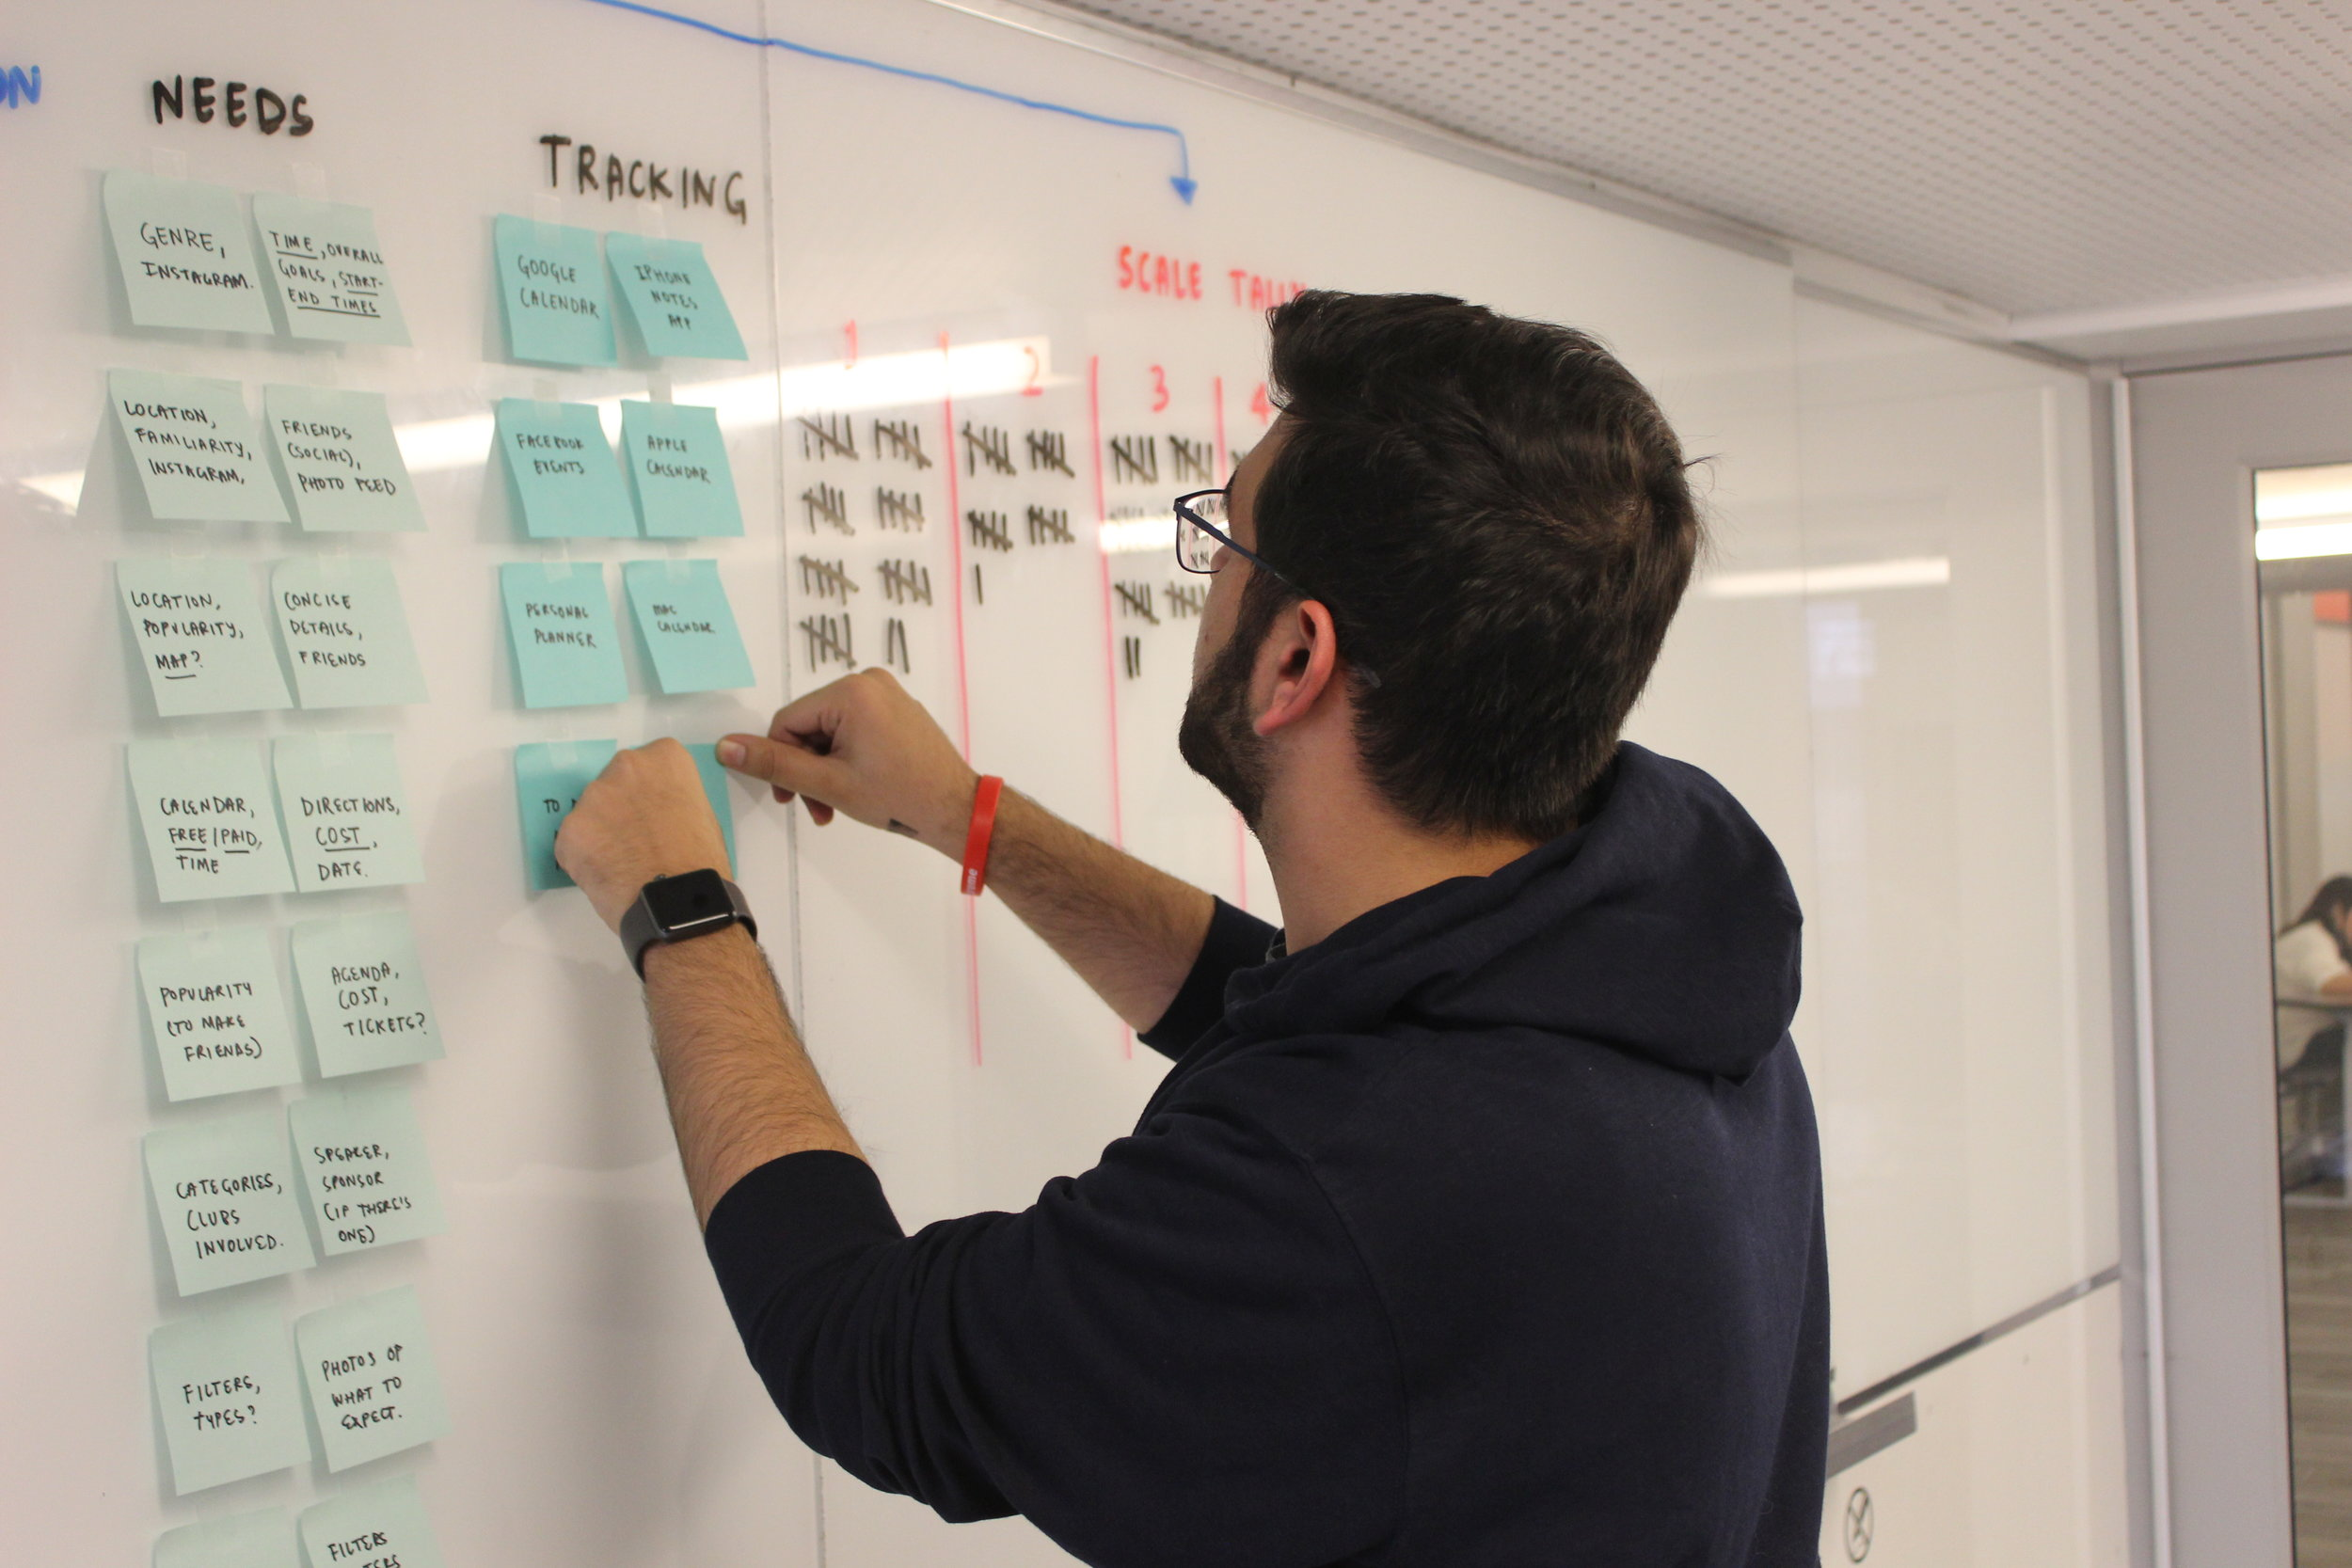 Installing an extensive affinity diagram on the whiteboard